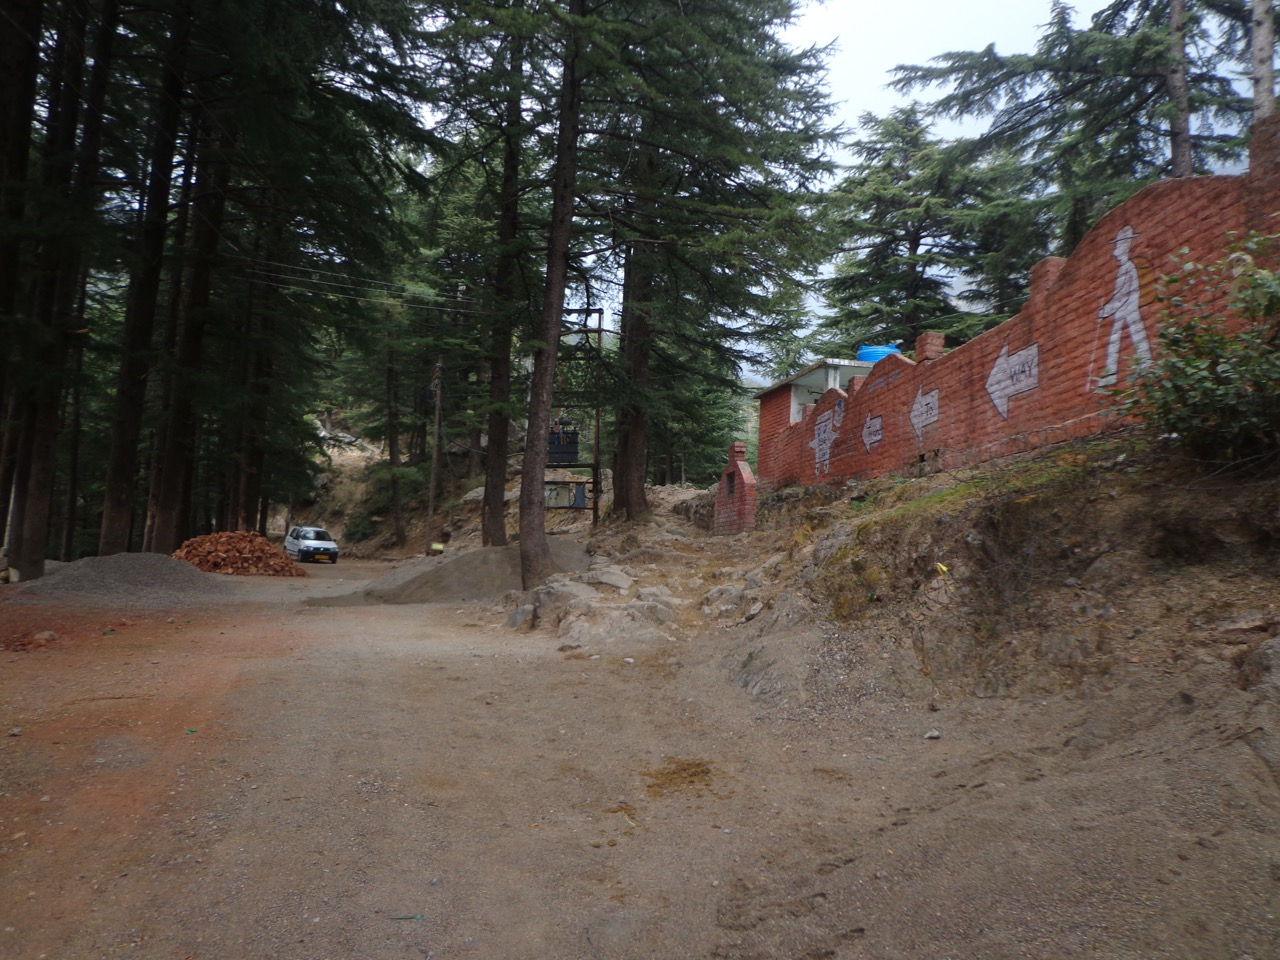 The walking trail to Triund is between the trees and the wall. I took the proper road instead.